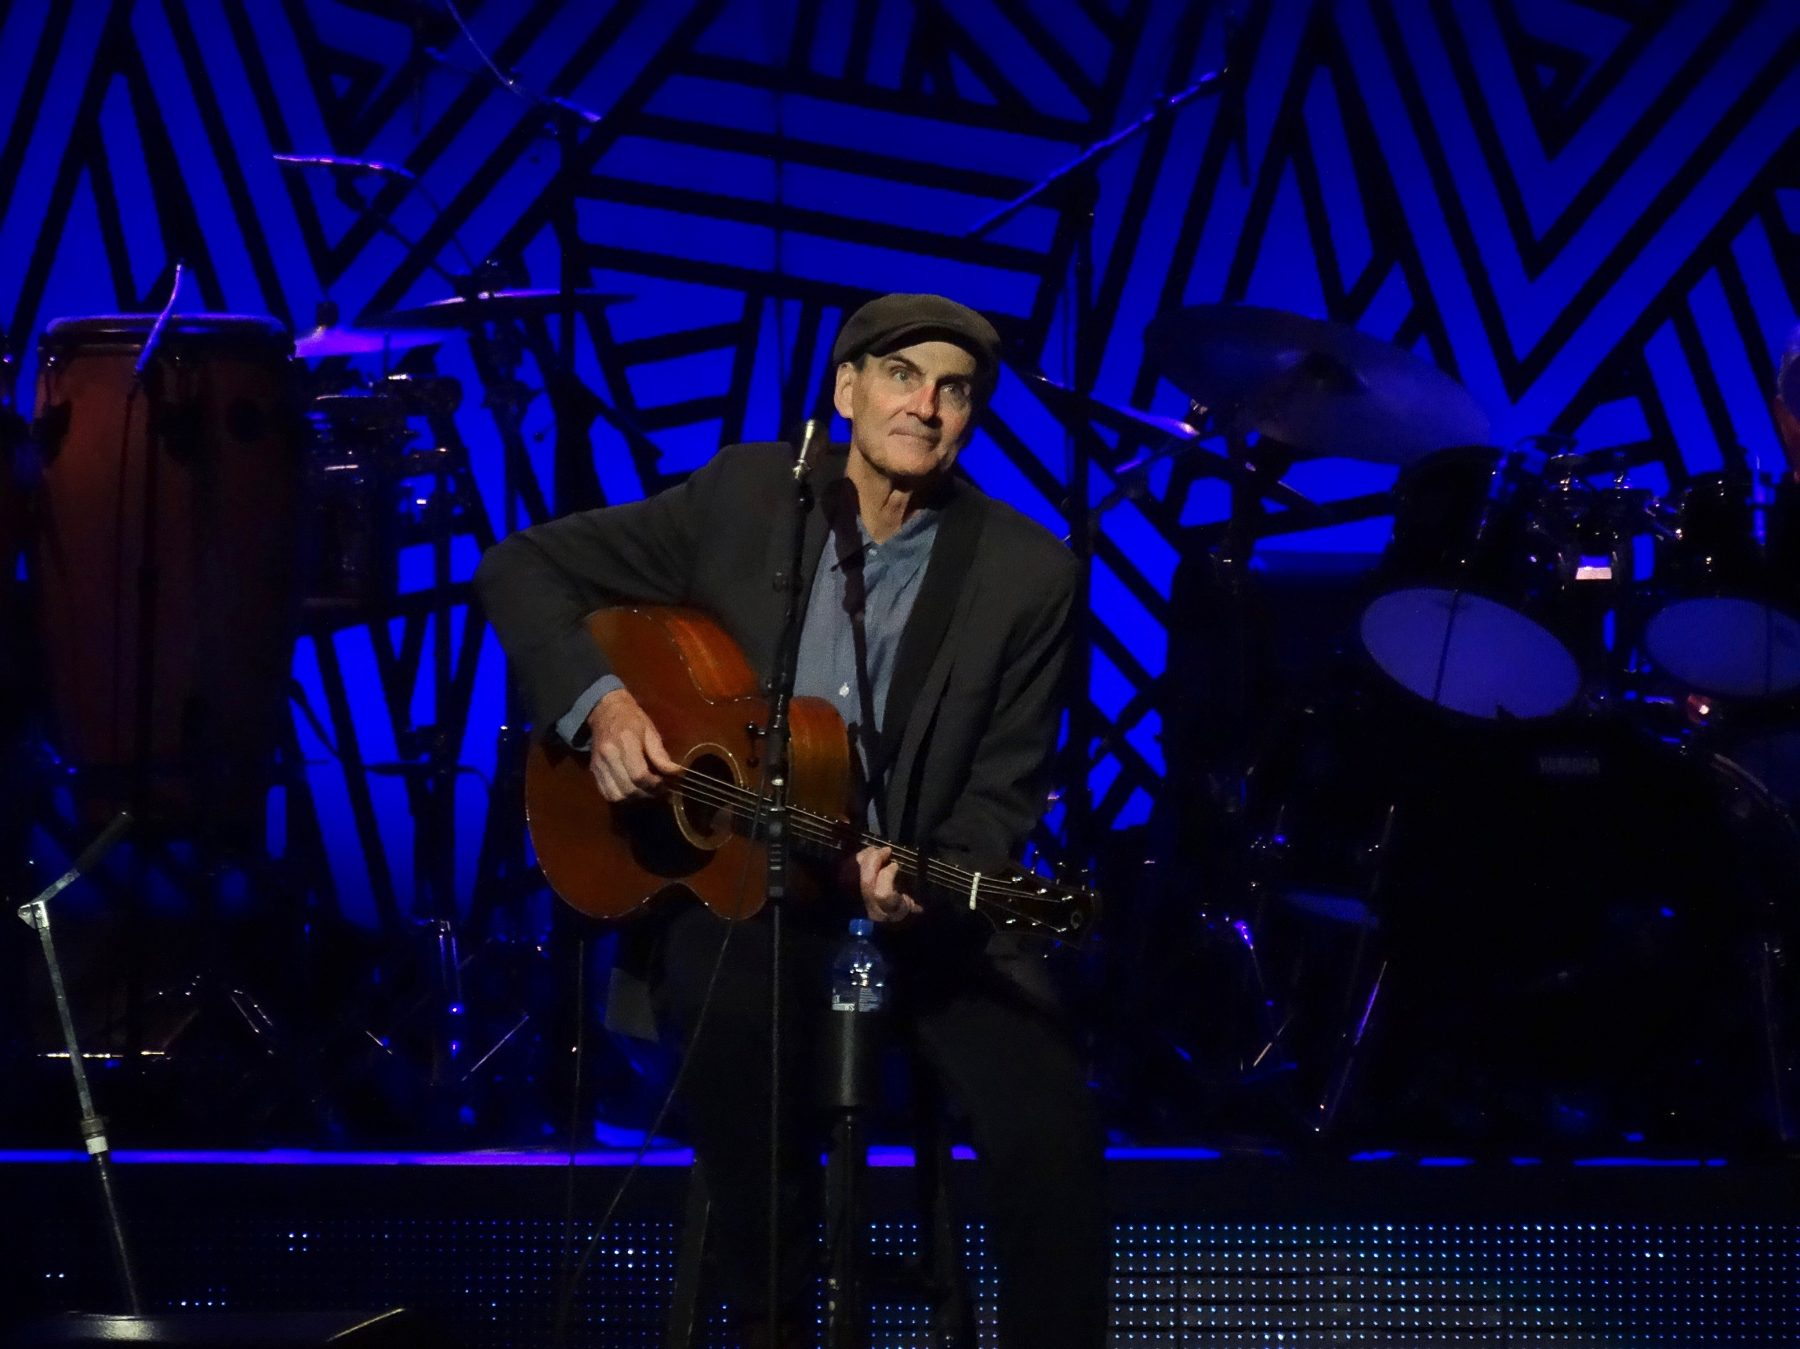 the life and music career of james taylor American musical icon james taylor overcame initial failure and drug addiction   and record songs that were inspired from his own experiences in life that  touched so  and offers an introduction, a summary of taylor's career and  importance,.